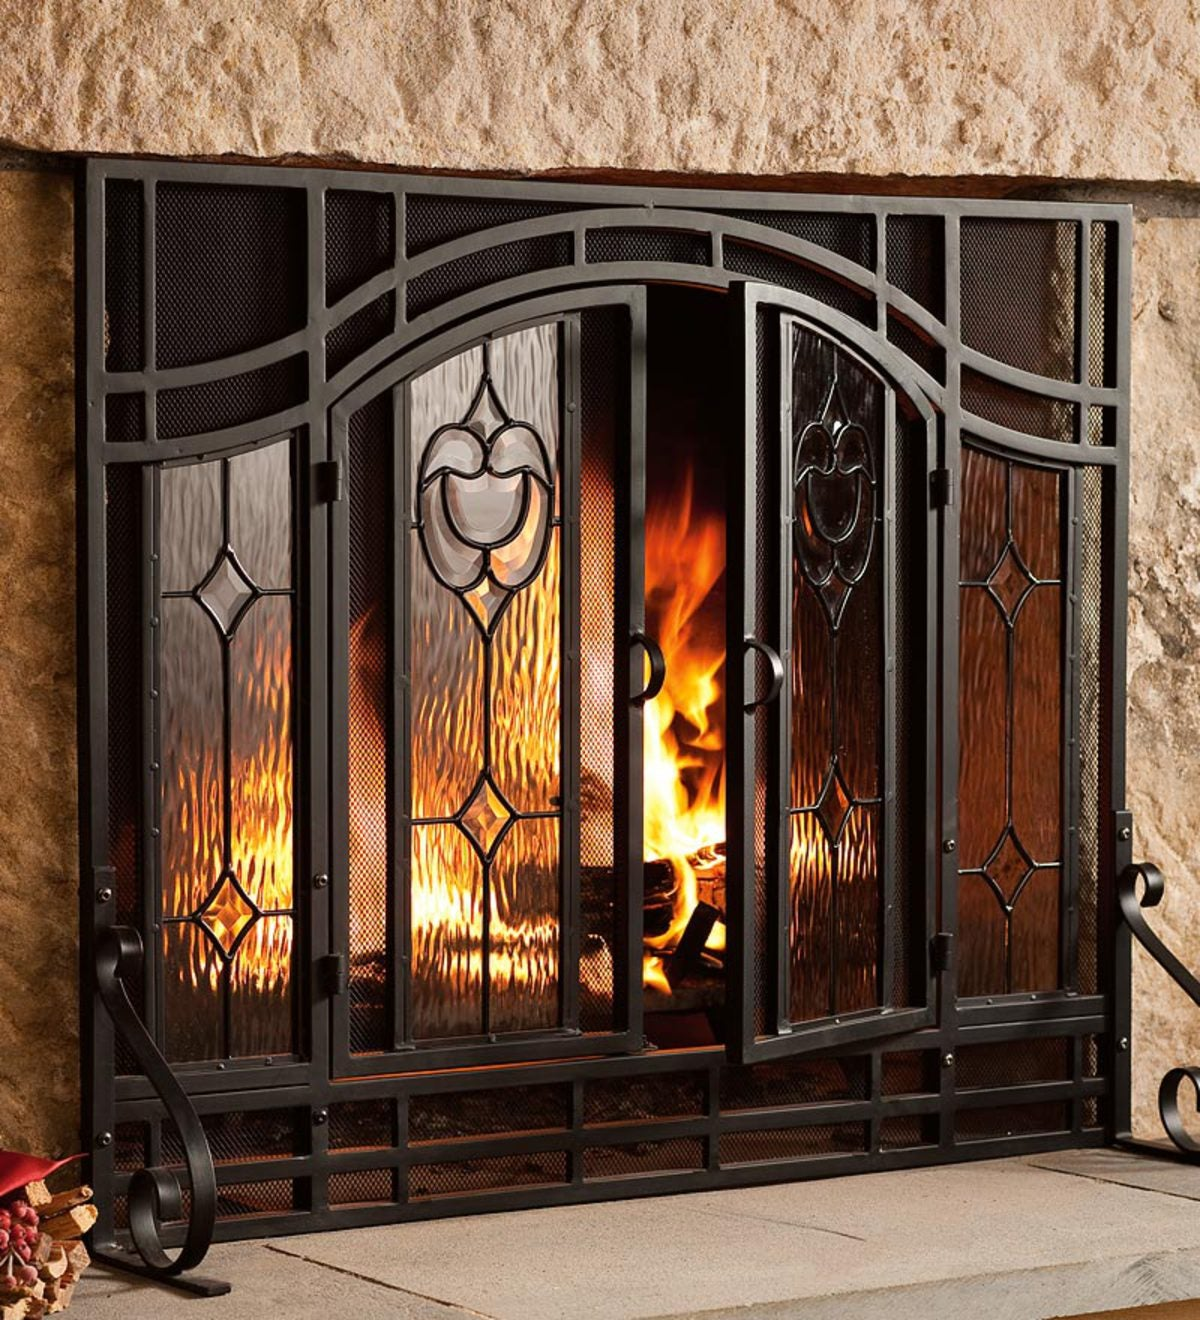 Fantastic Small Two Door Fireplace Screen With Glass Floral Panels Interior Design Ideas Clesiryabchikinfo